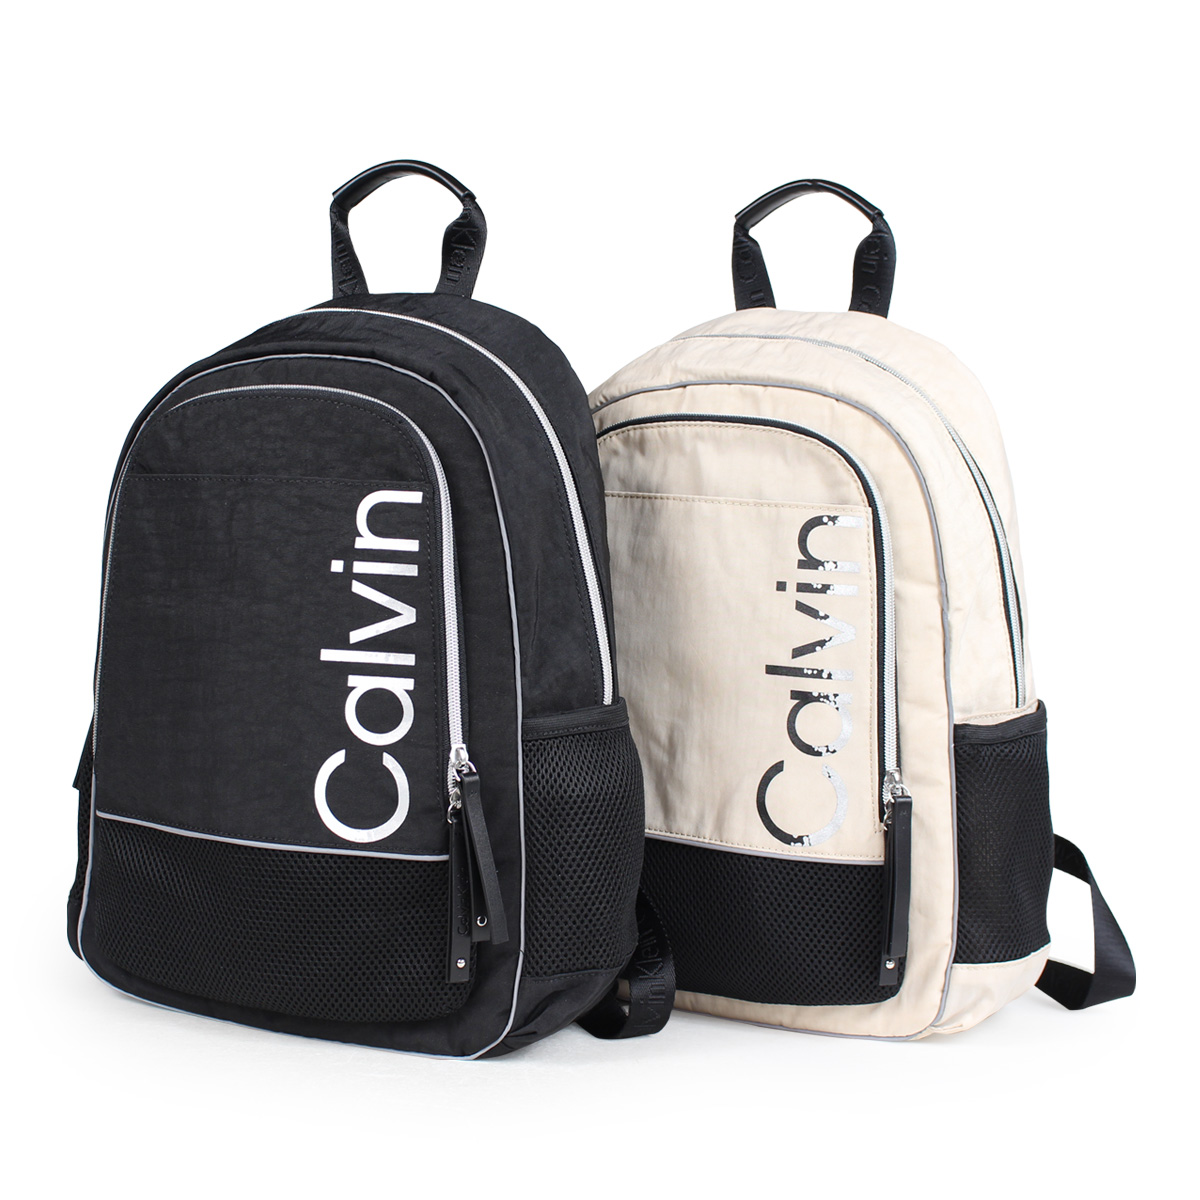 689a87a50f6 Calvin Klein ATHLEISURE BACKPACK Calvin Klein bag men gap Dis rucksack bag  pack black beige H7DKE6ZM ...